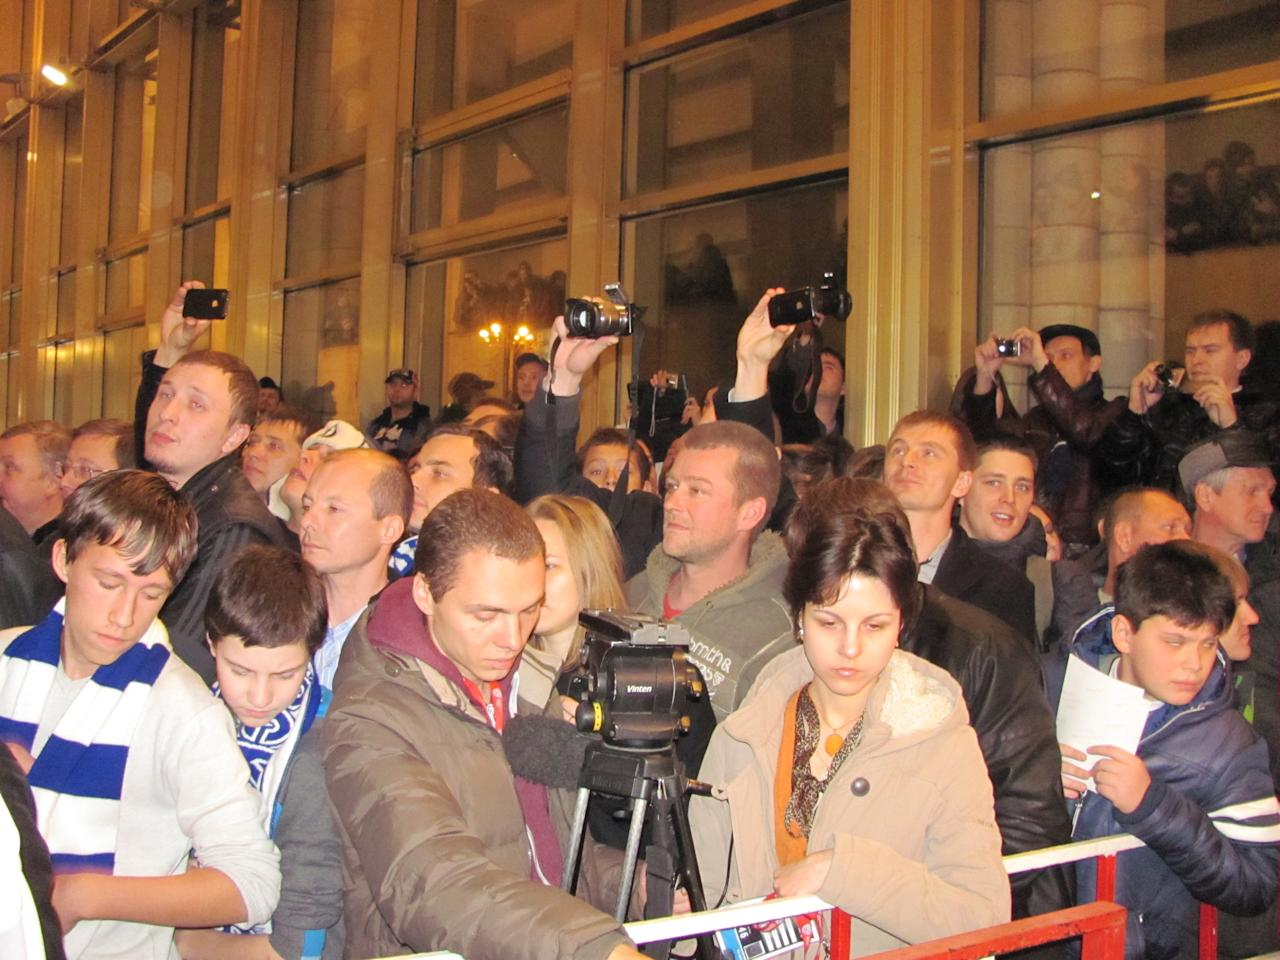 Fans waiting to meet Alex Ovechkin. (#NickInEurope)